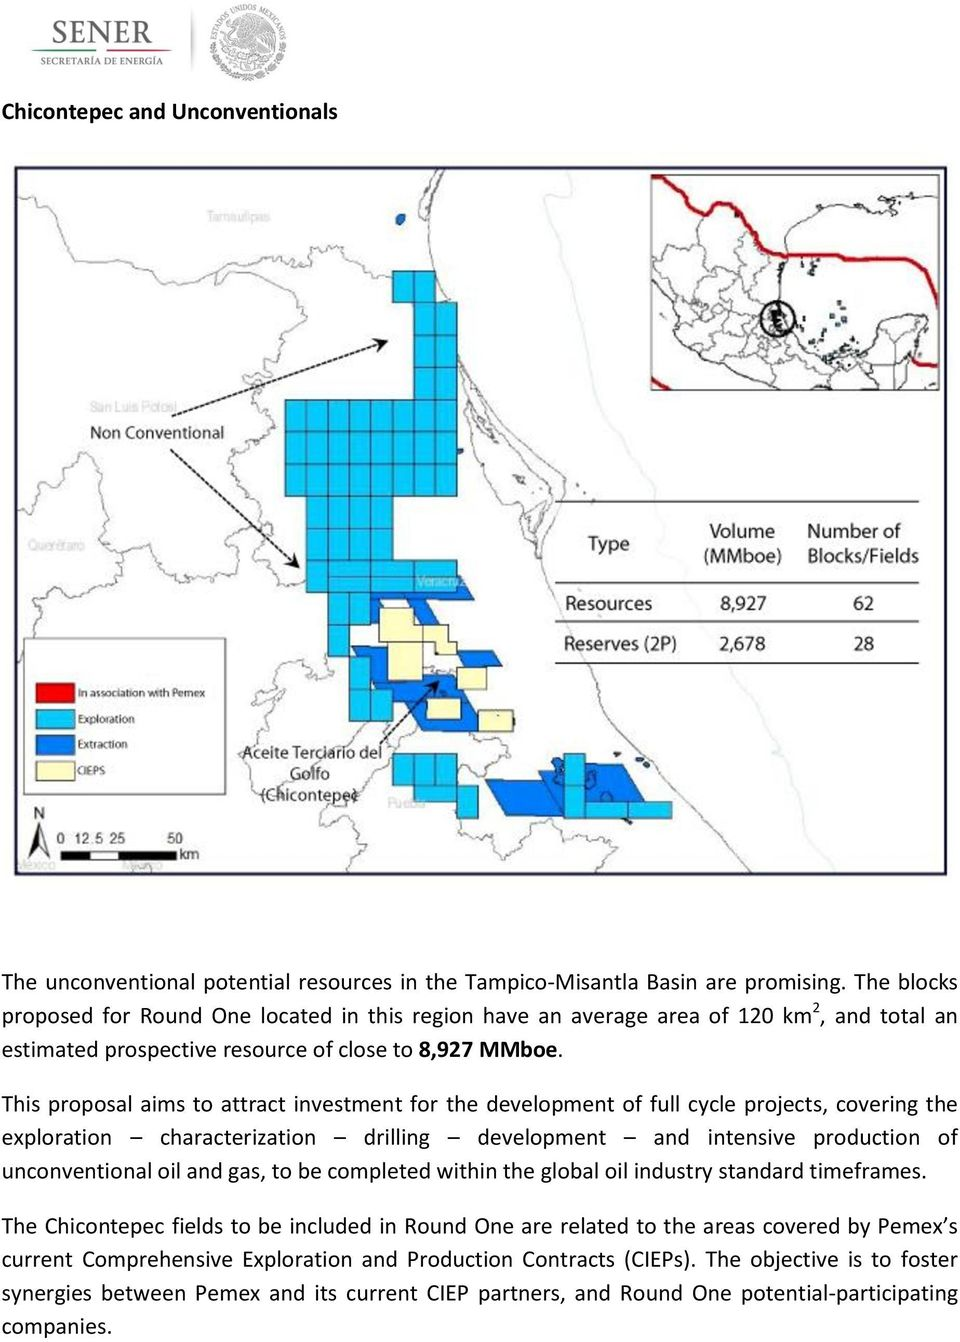 This proposal aims to attract investment for the development of full cycle projects, covering the exploration characterization drilling development and intensive production of unconventional oil and